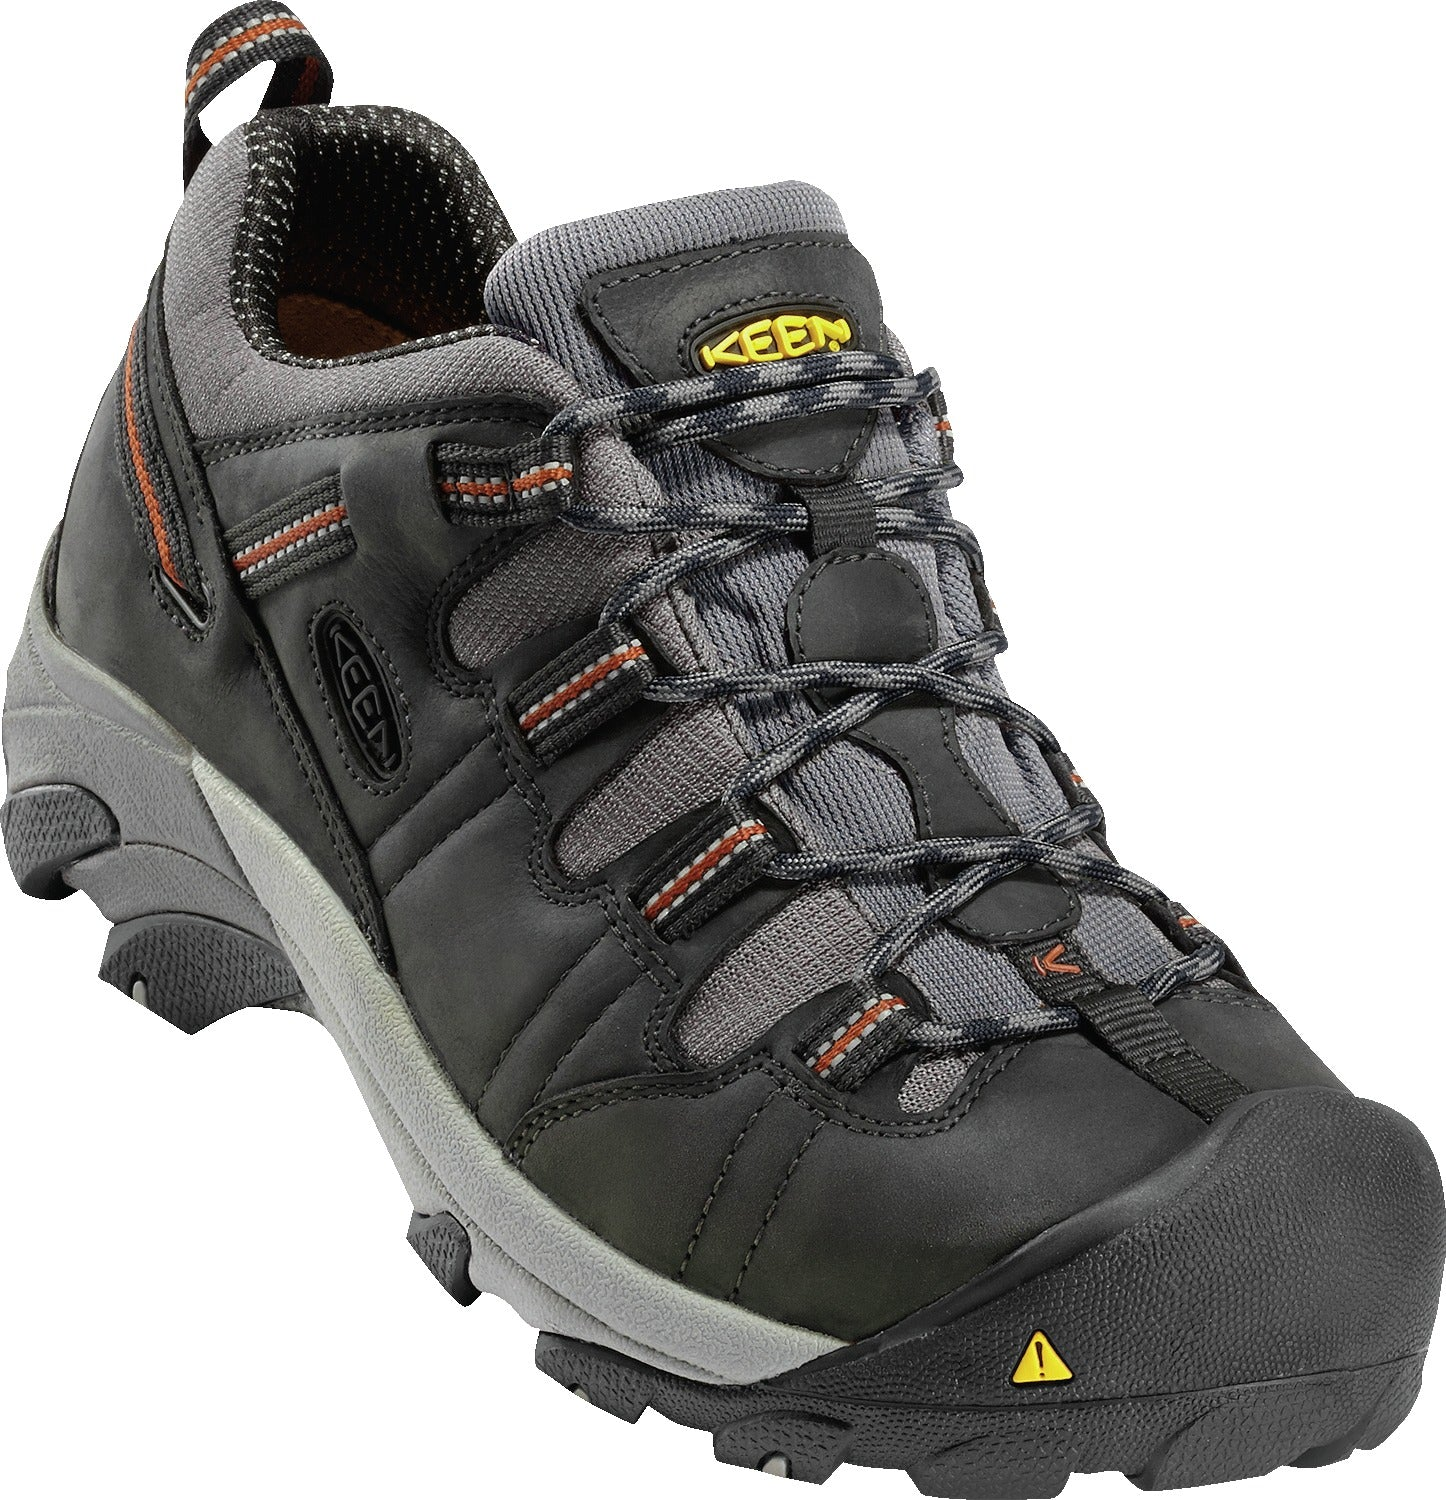 'Keen' 1007010 - Detroit Low Steel Toe Shoe - Dark Grey / Grey